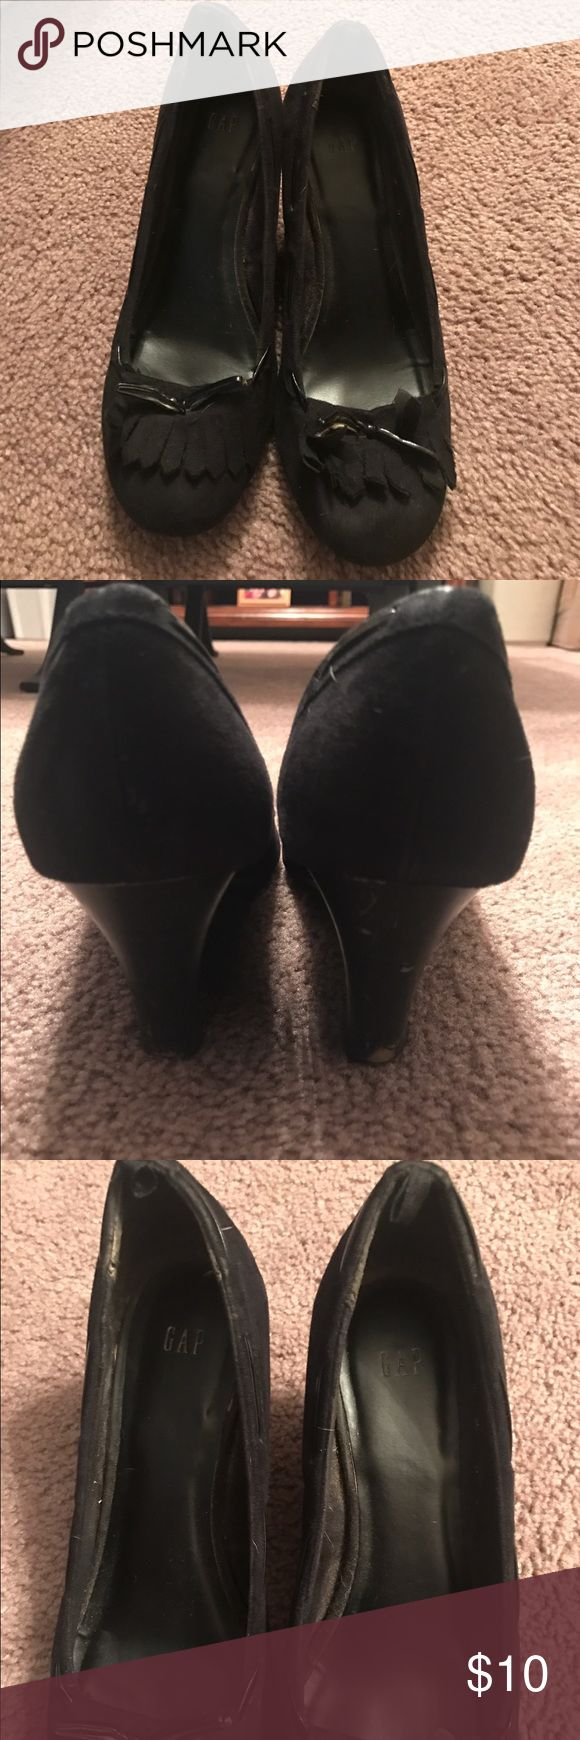 Gap shoes Women's Gap shoes size 8 worn but still have life in them GAP Shoes